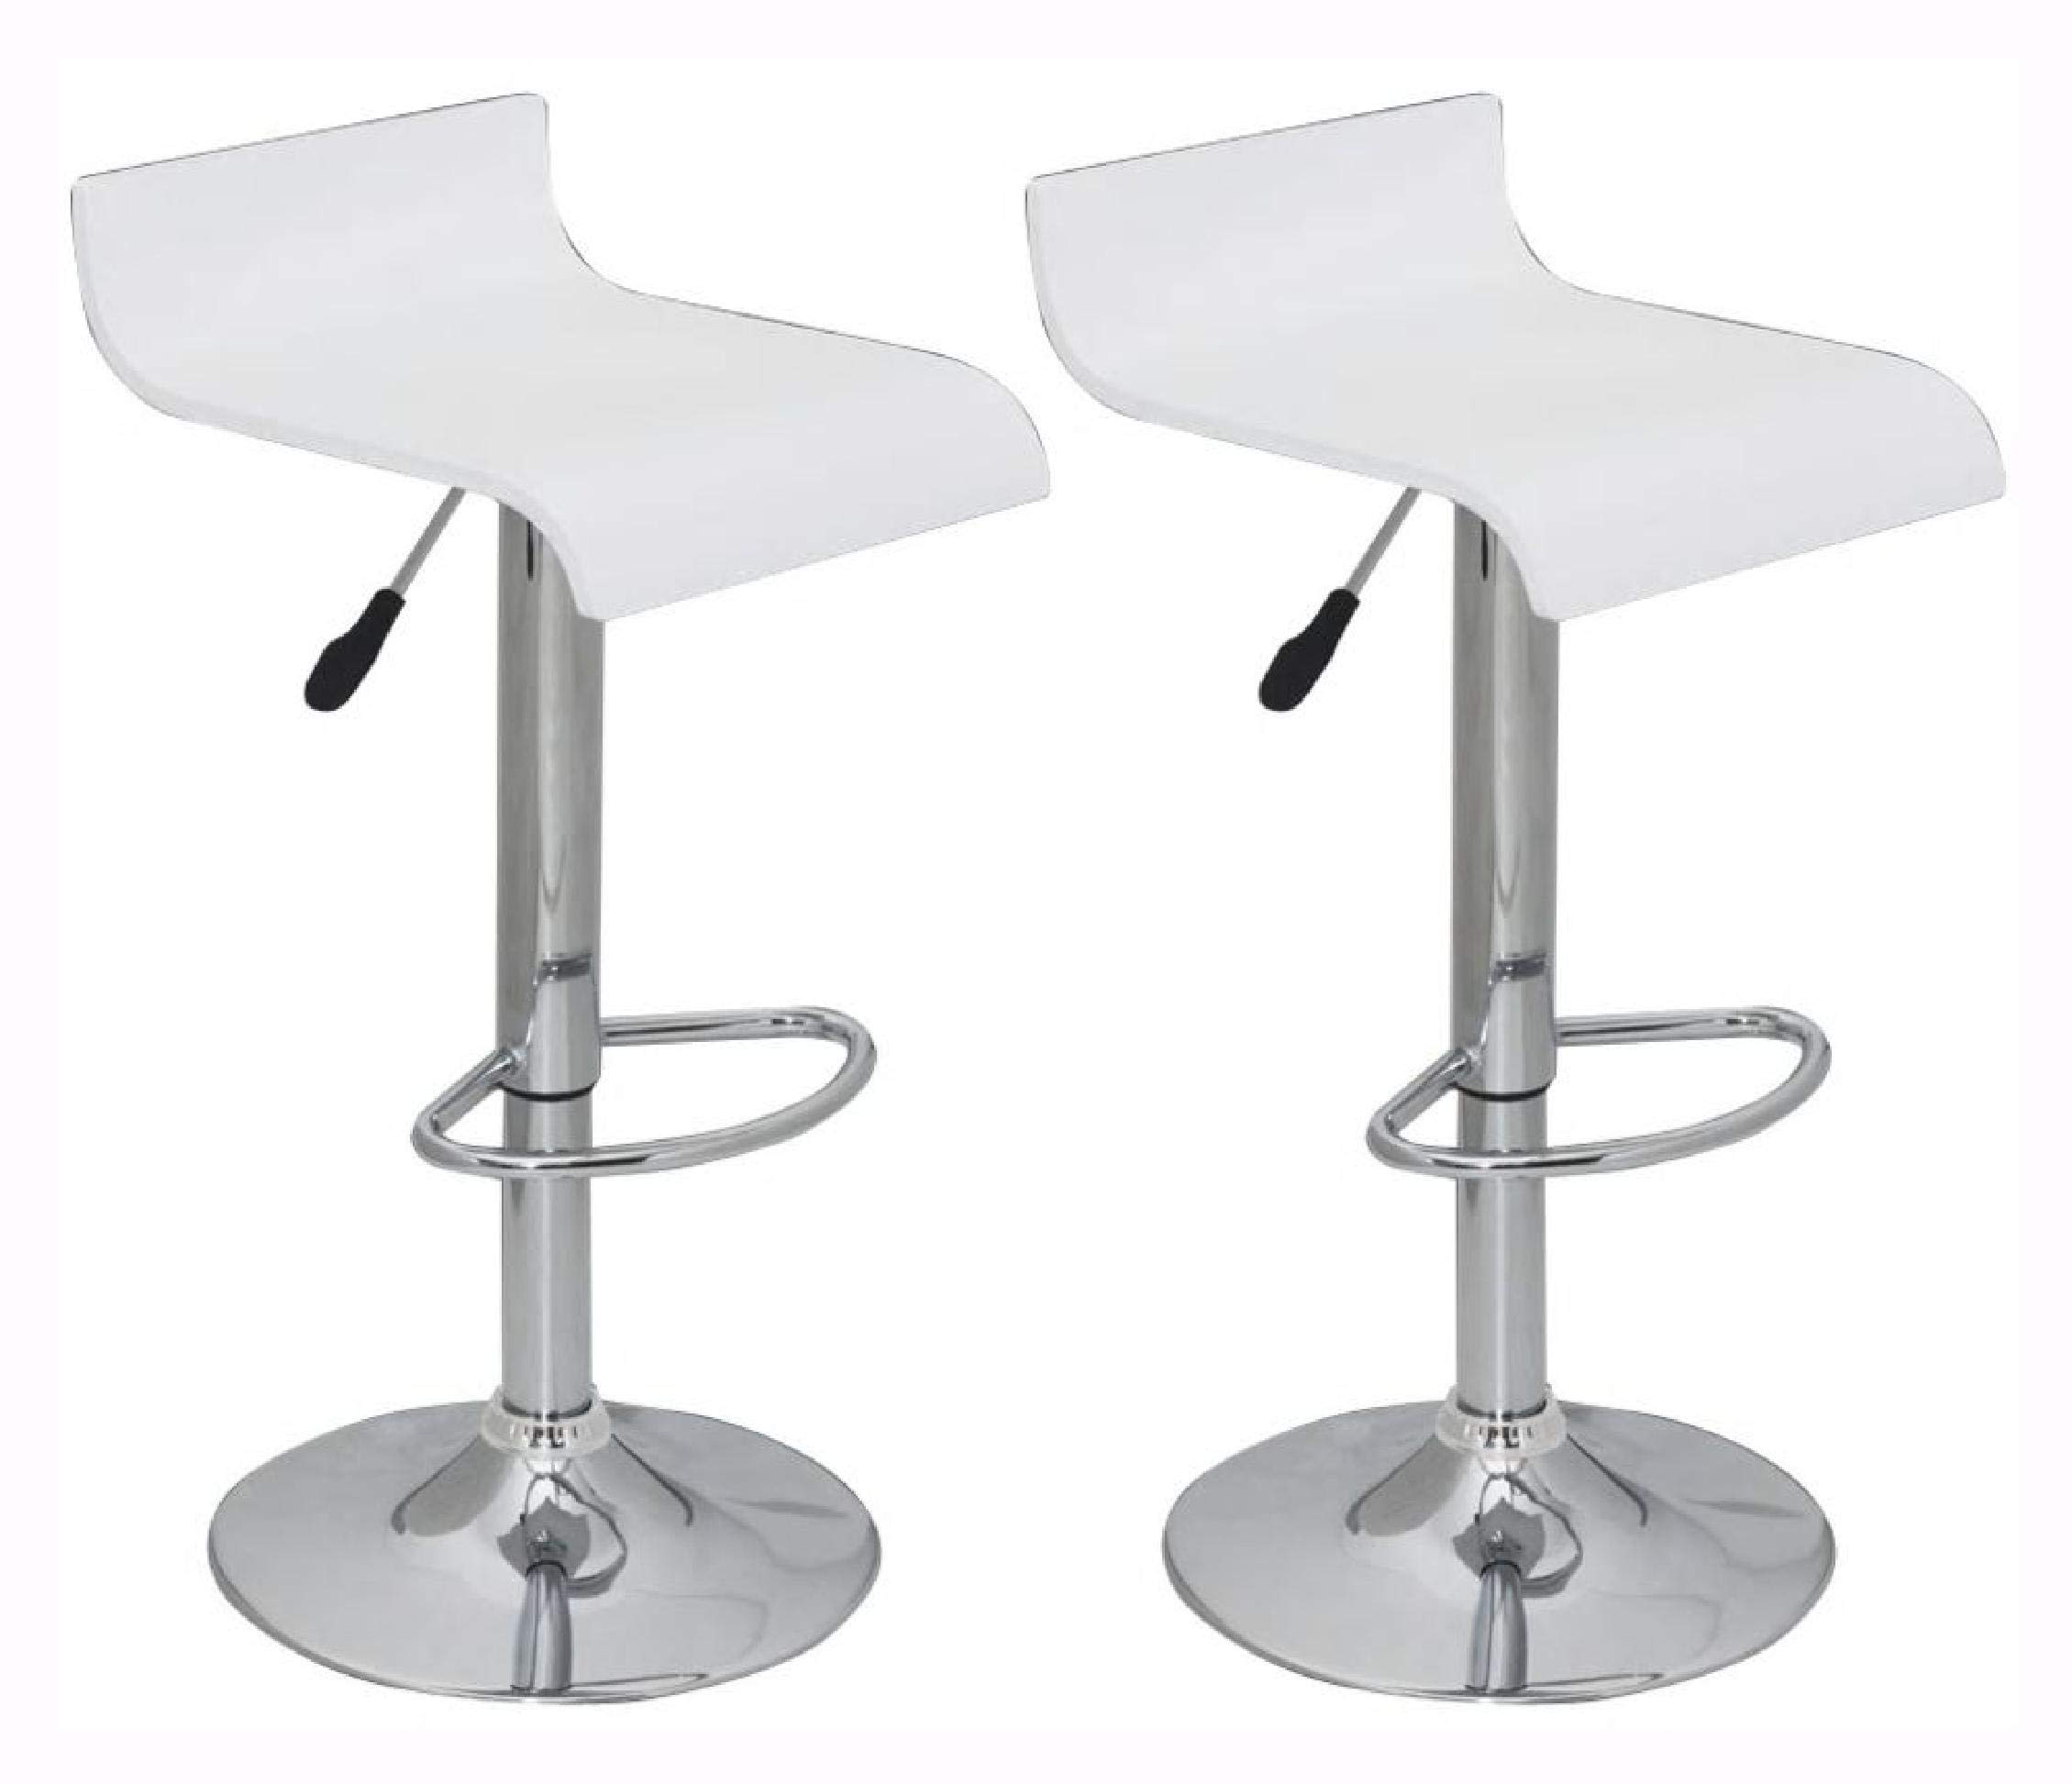 Table & Bar Stool, Set of 2 White Bar Stool Wooden Seat with Low Backrest by HomyDelight